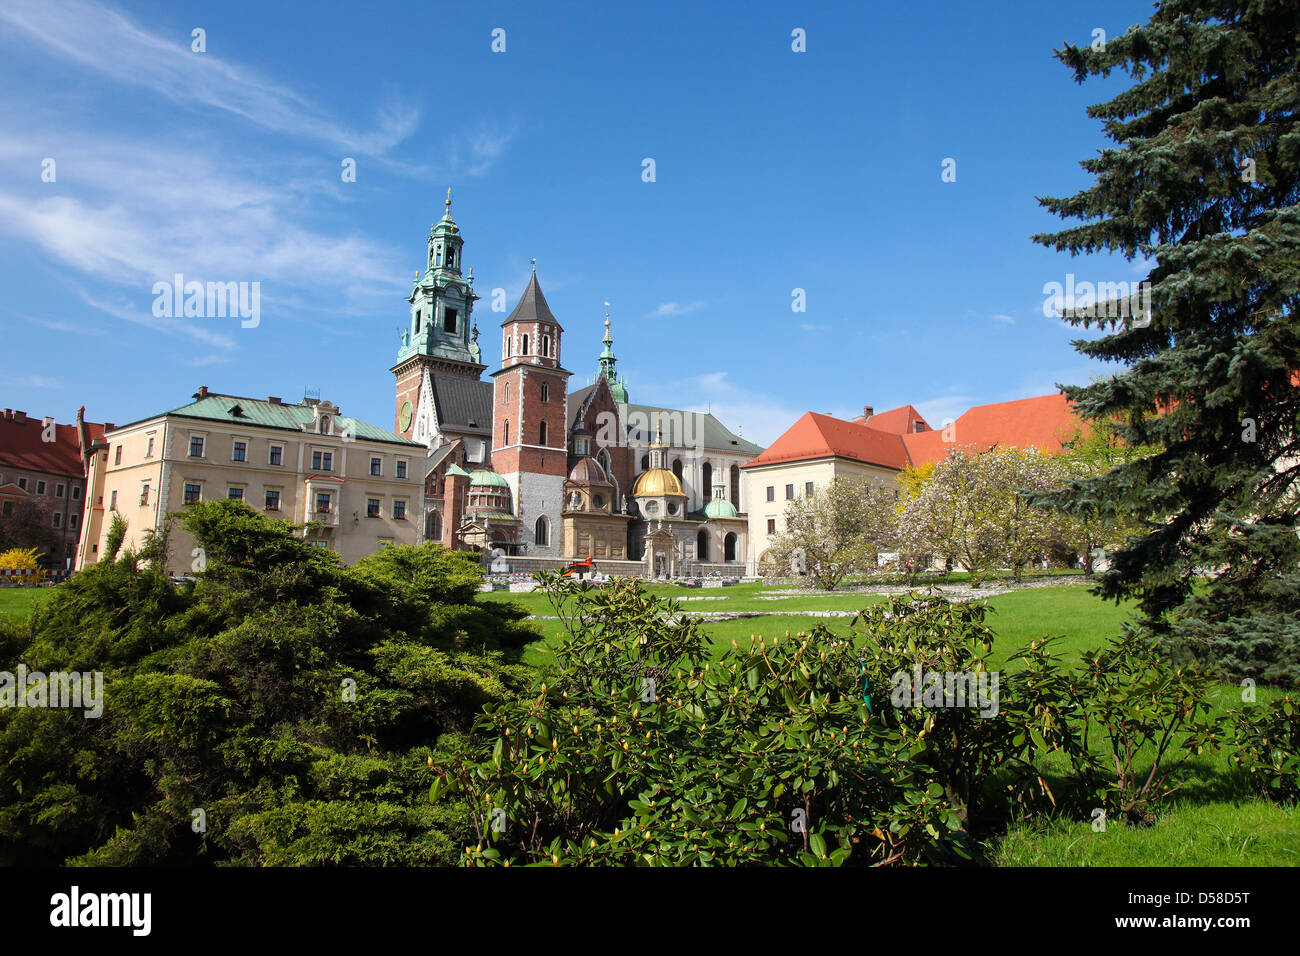 Wawel cathedral is a Roman Catholic church located on Wawel Hill in Krakow, Poland. - Stock Image